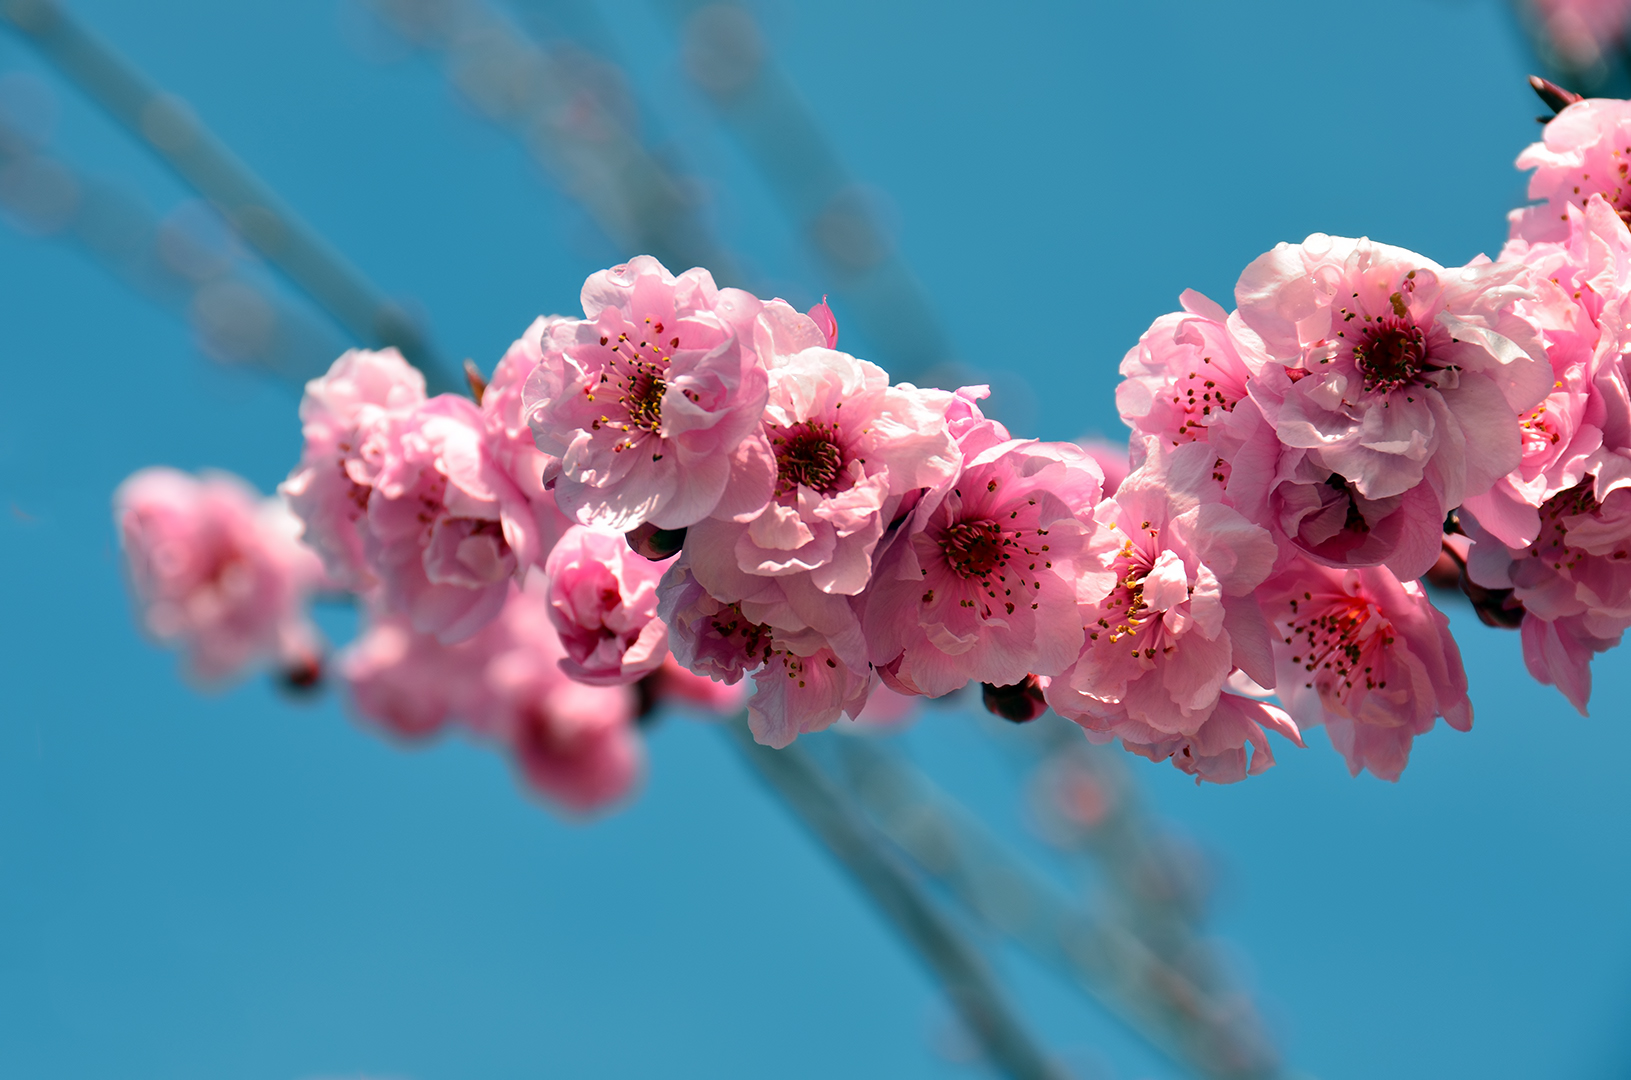 sakura cherry blossoms Find cherry blossoms stock images in hd and millions of other royalty-free stock photos, illustrations, and vectors in the shutterstock collection thousands of new.